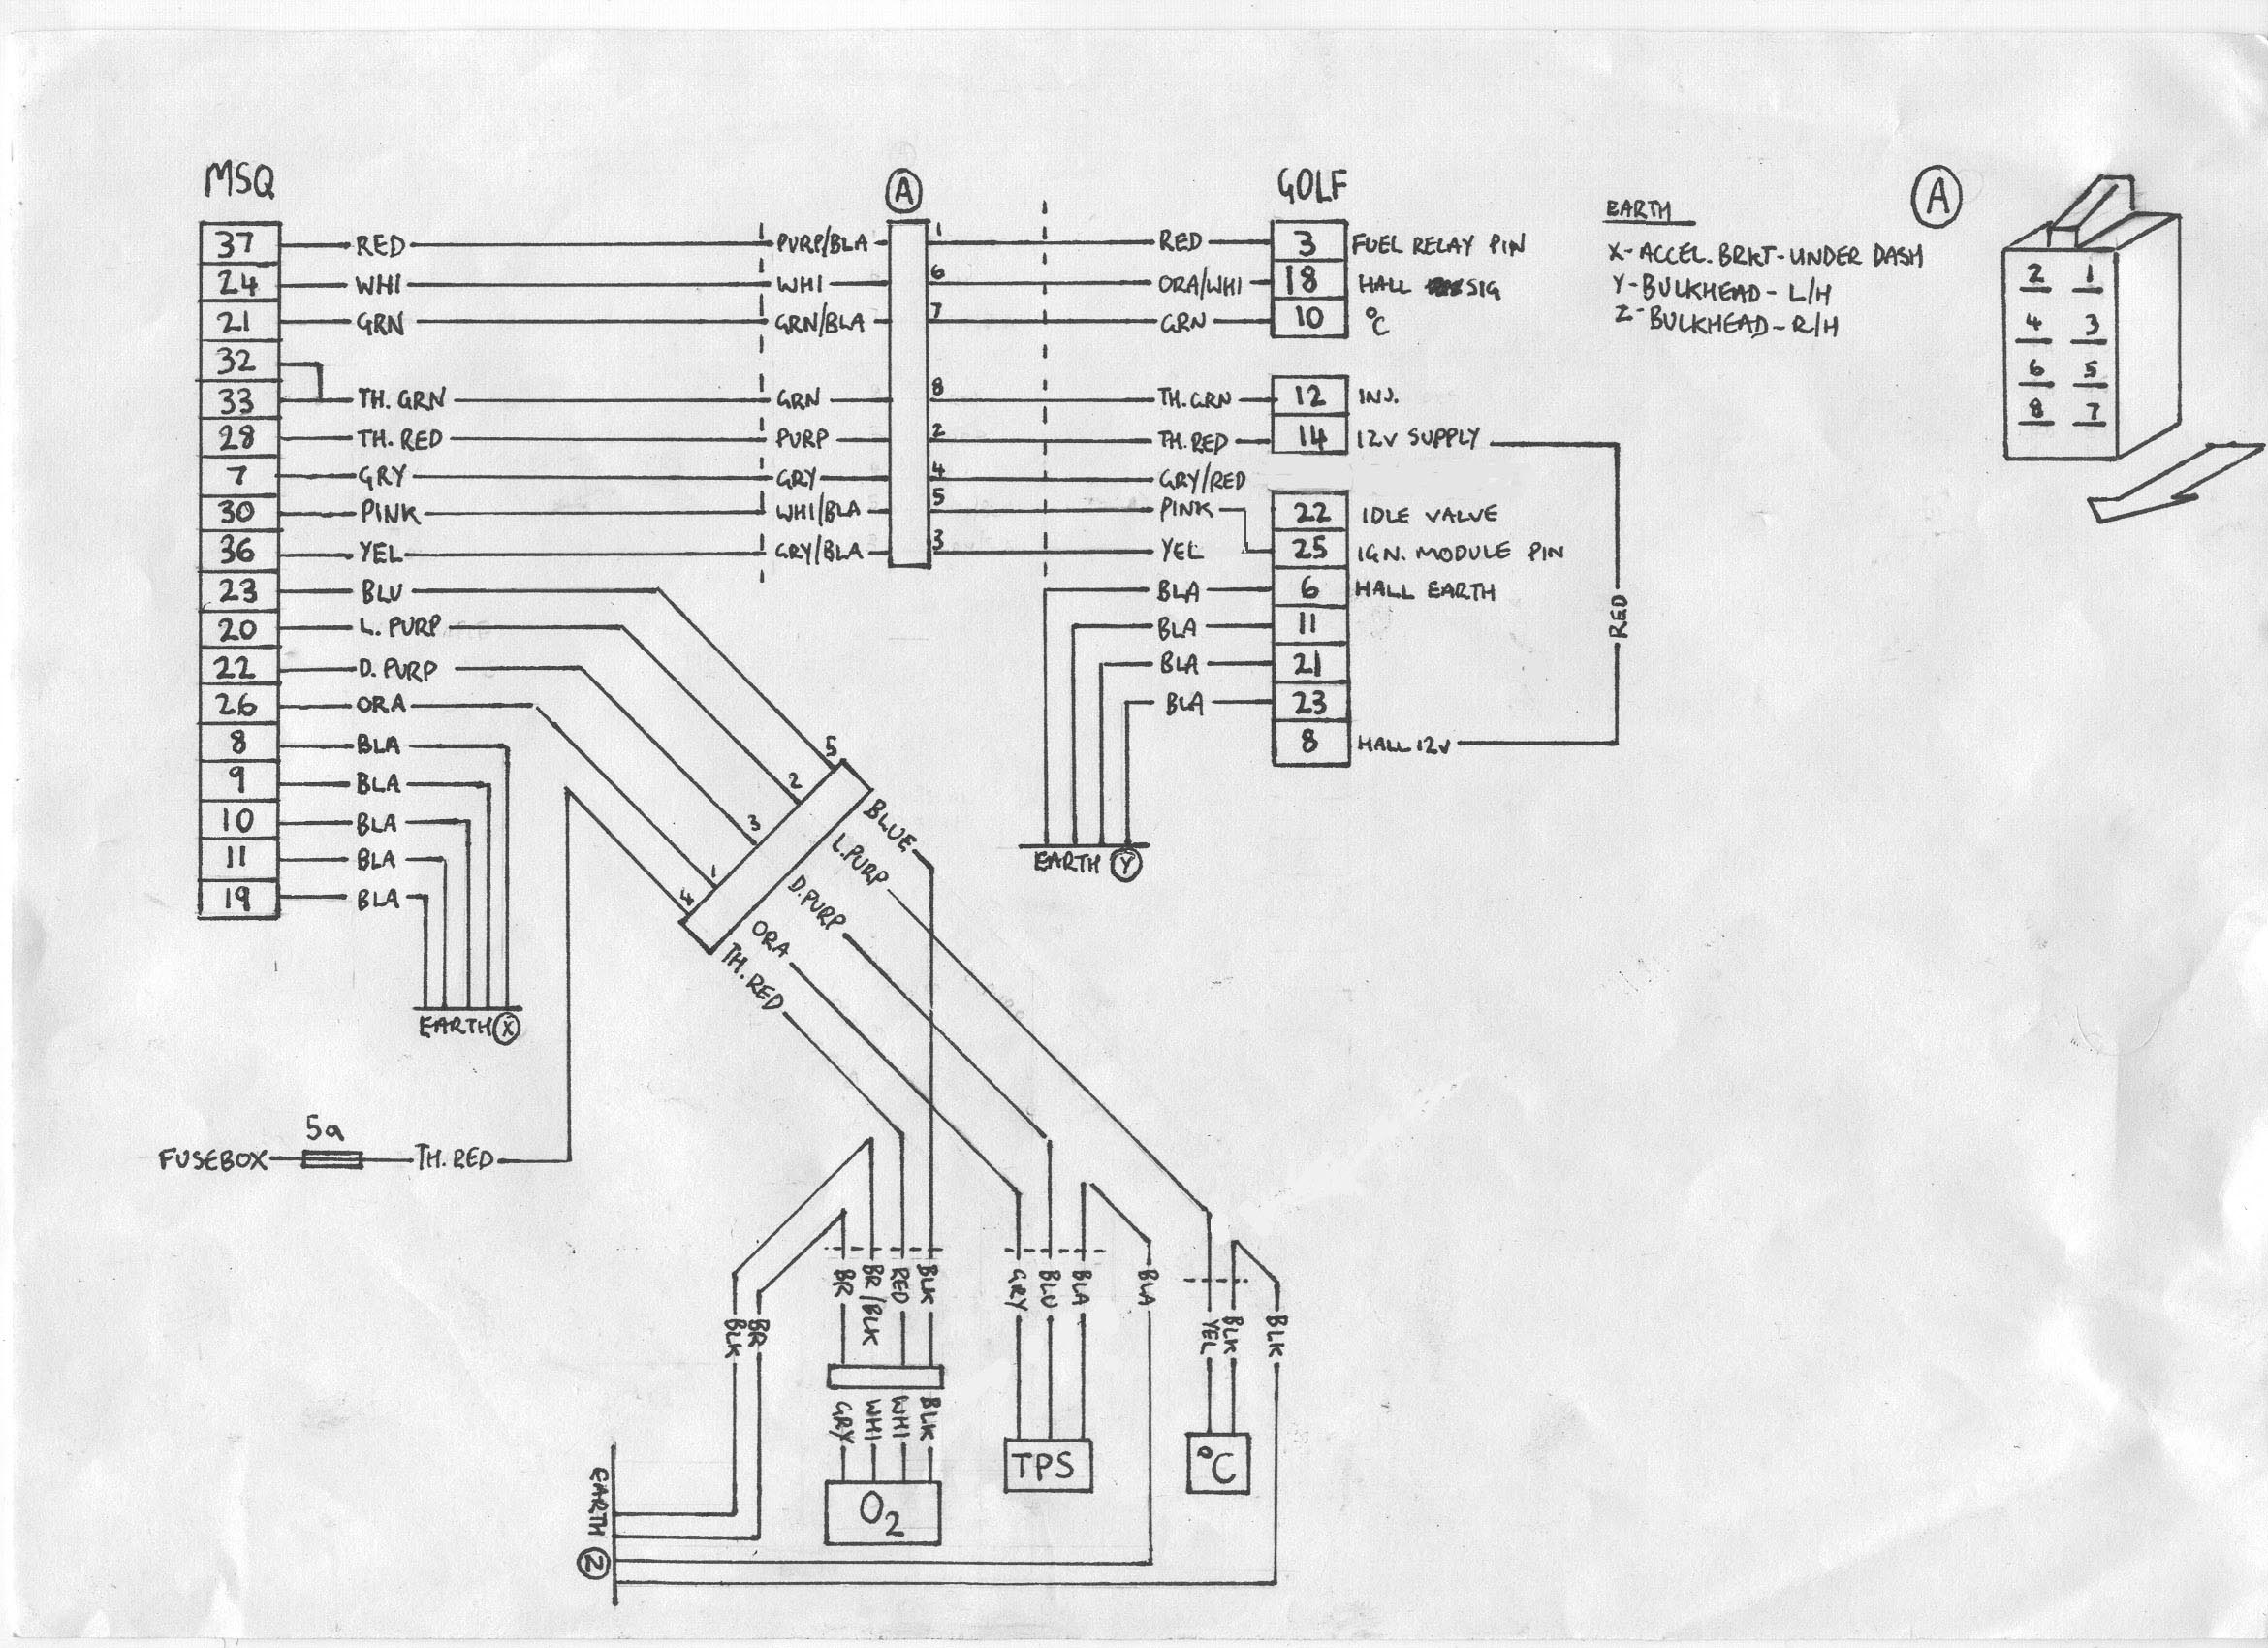 wiring diagram dimmer switch uk images dimmer light switch uk jlg wiring diagrams pictures